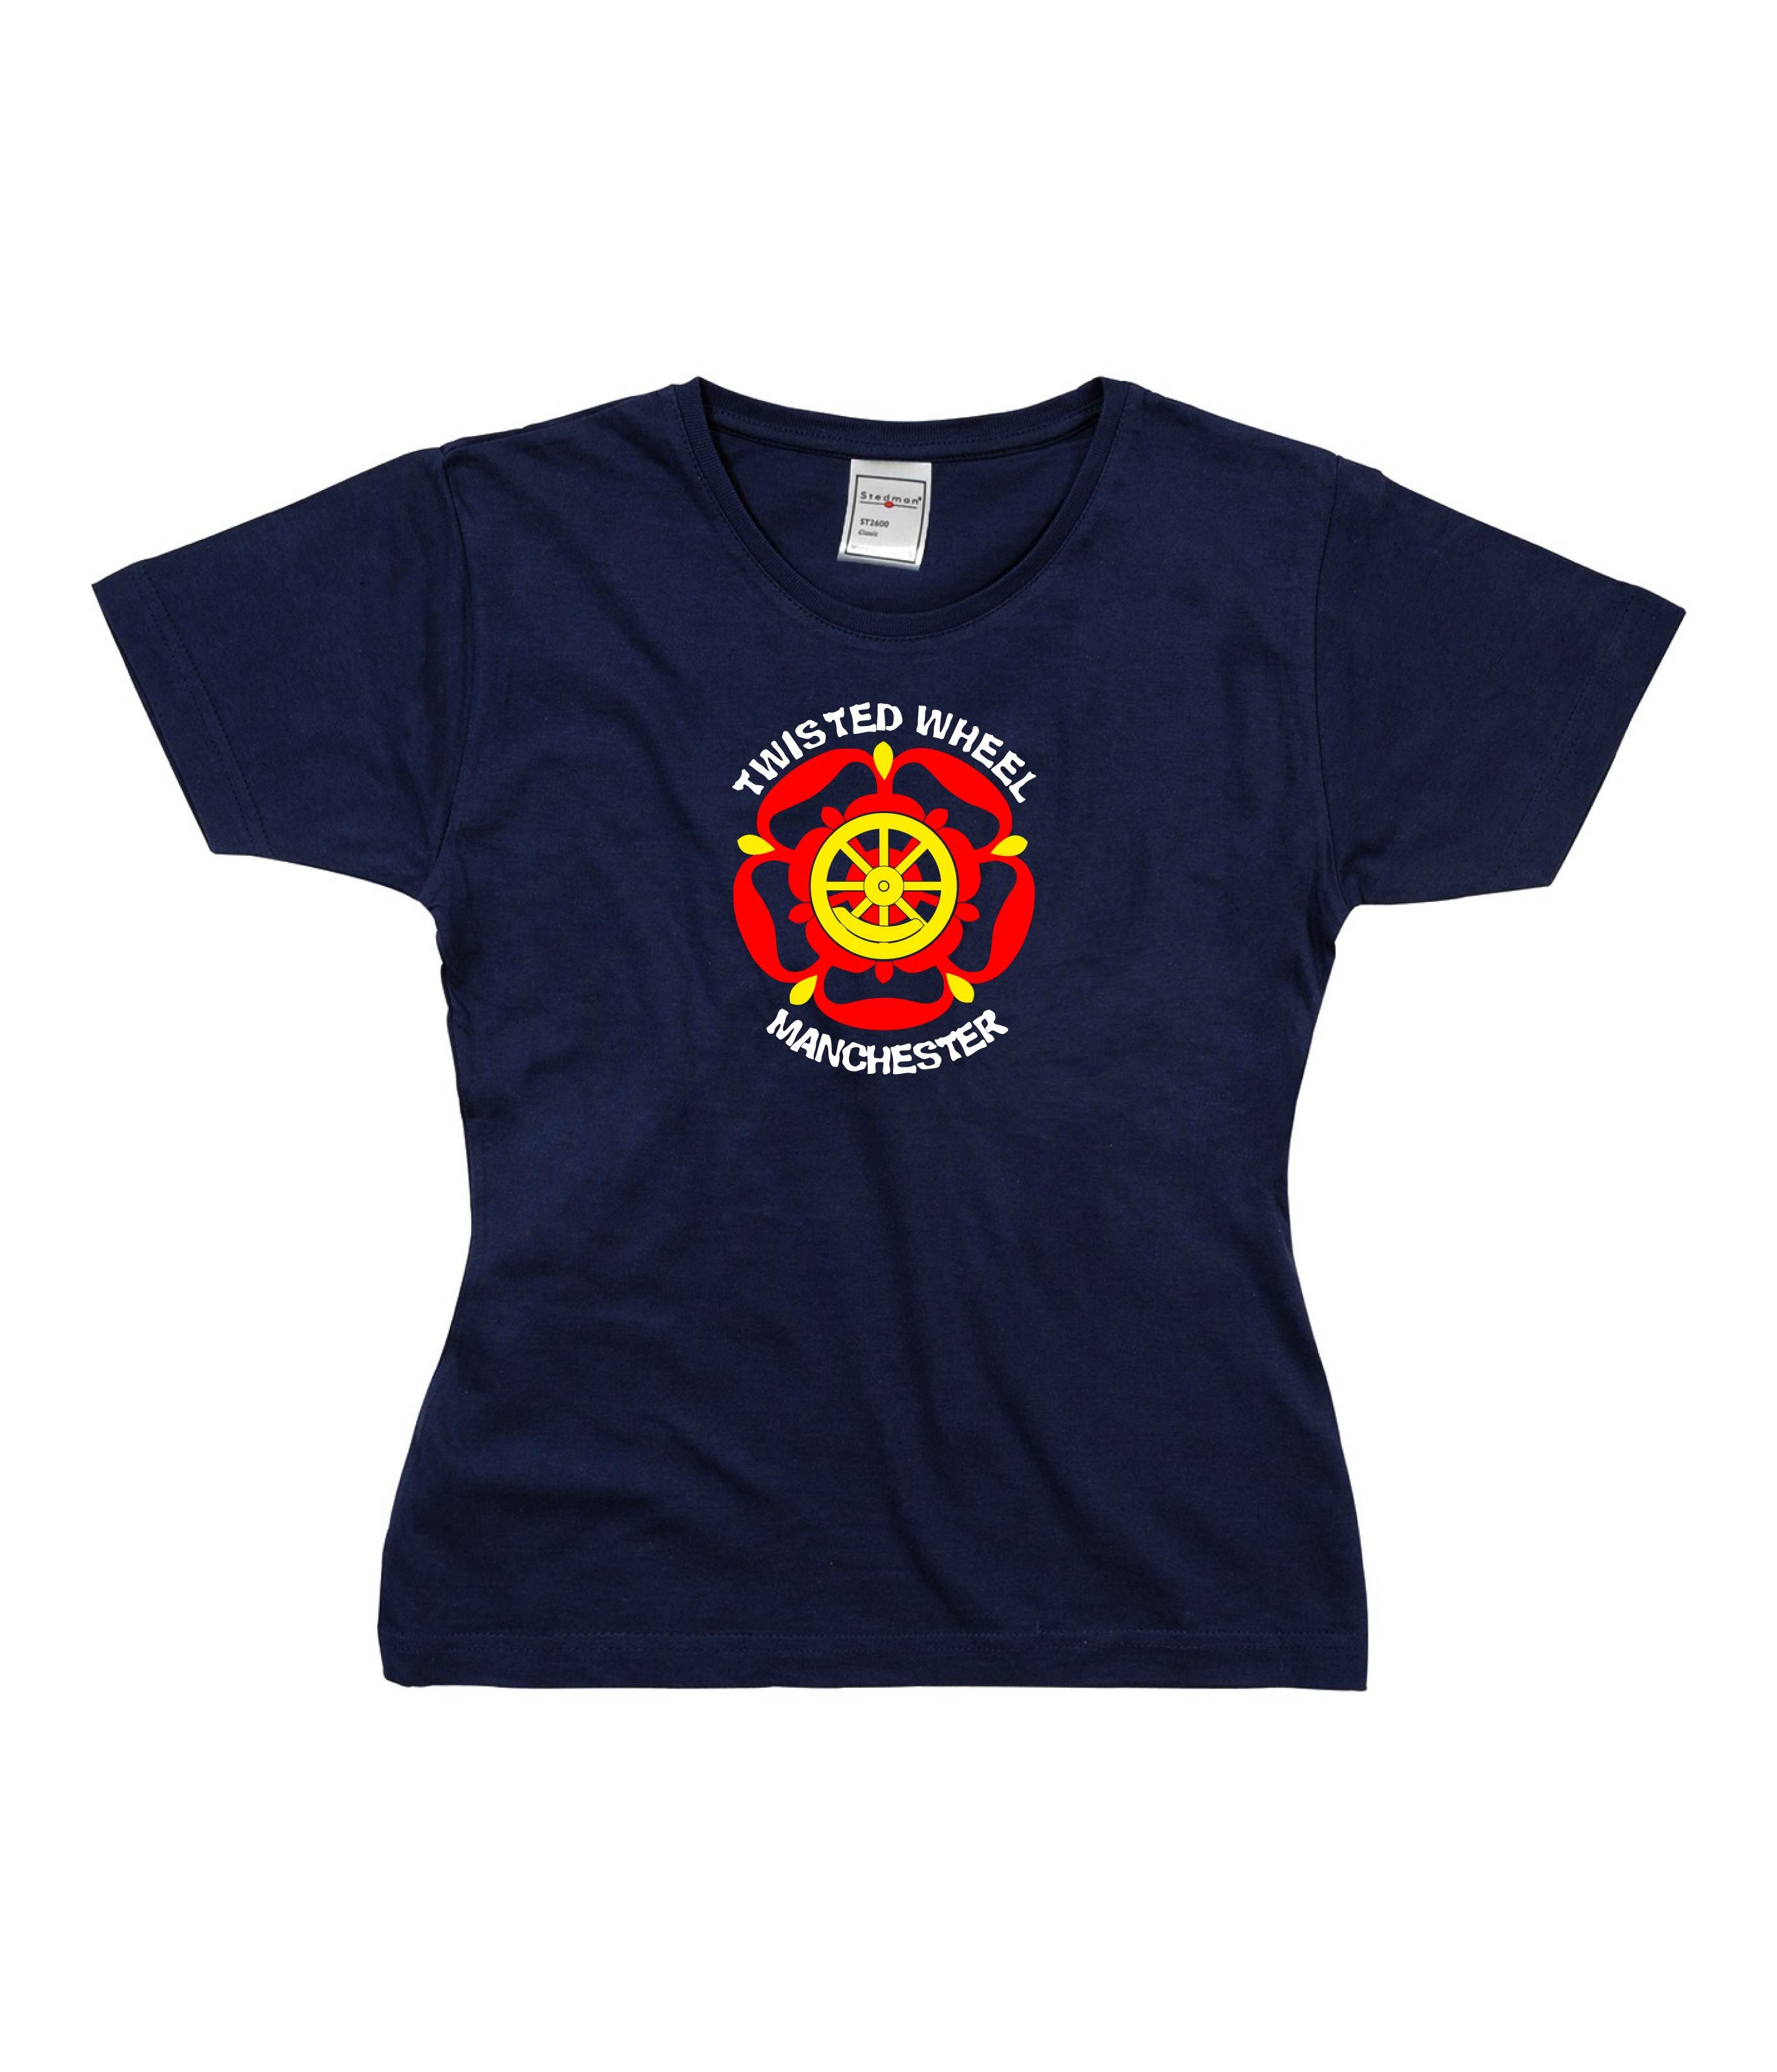 Womens Northern Soul T Shirt - Twisted Wheel Manchester ss185